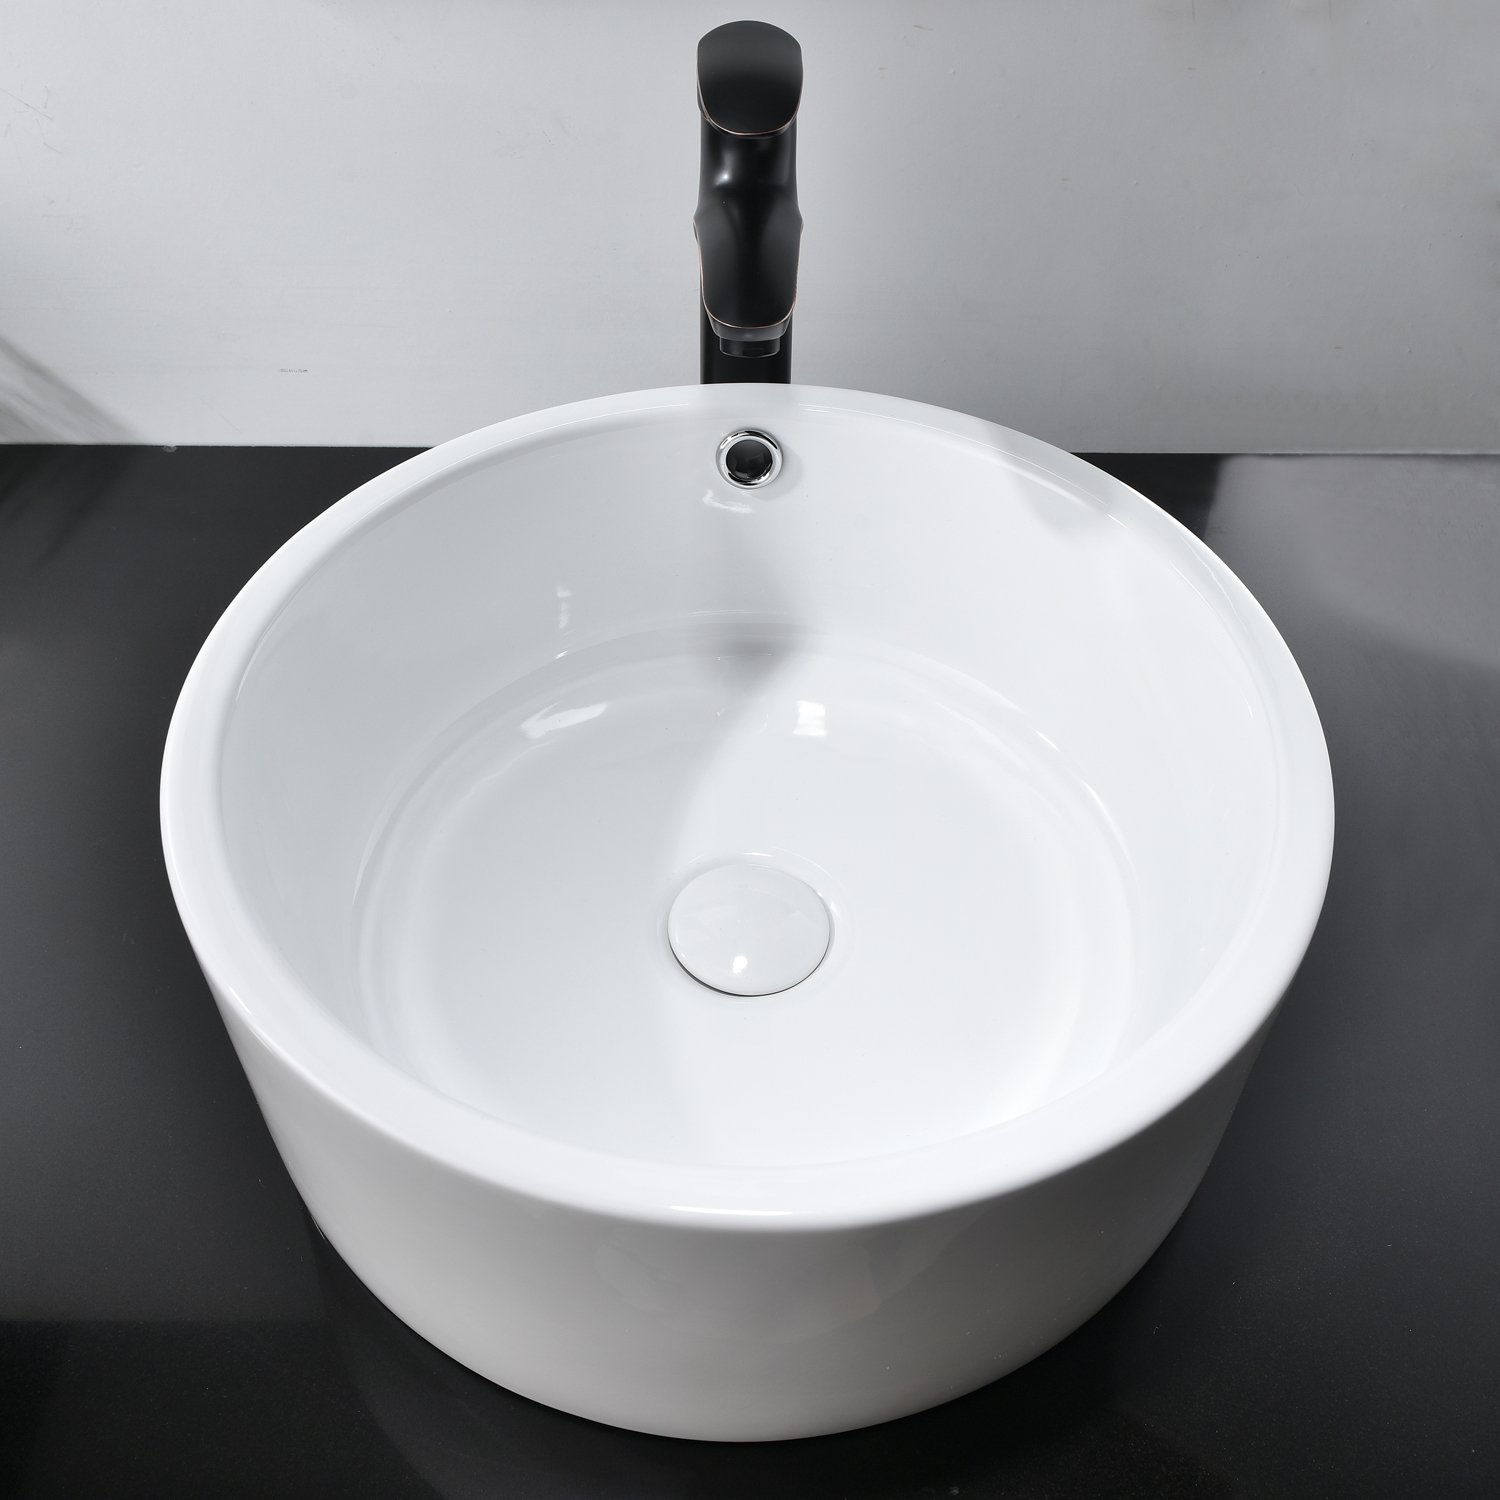 Hotis White Porcelain Ceramic Countertop Bowl Lavatory Round Above Counter Vanity Bathroom Vessel Sink by HOTIS HOME (Image #2)